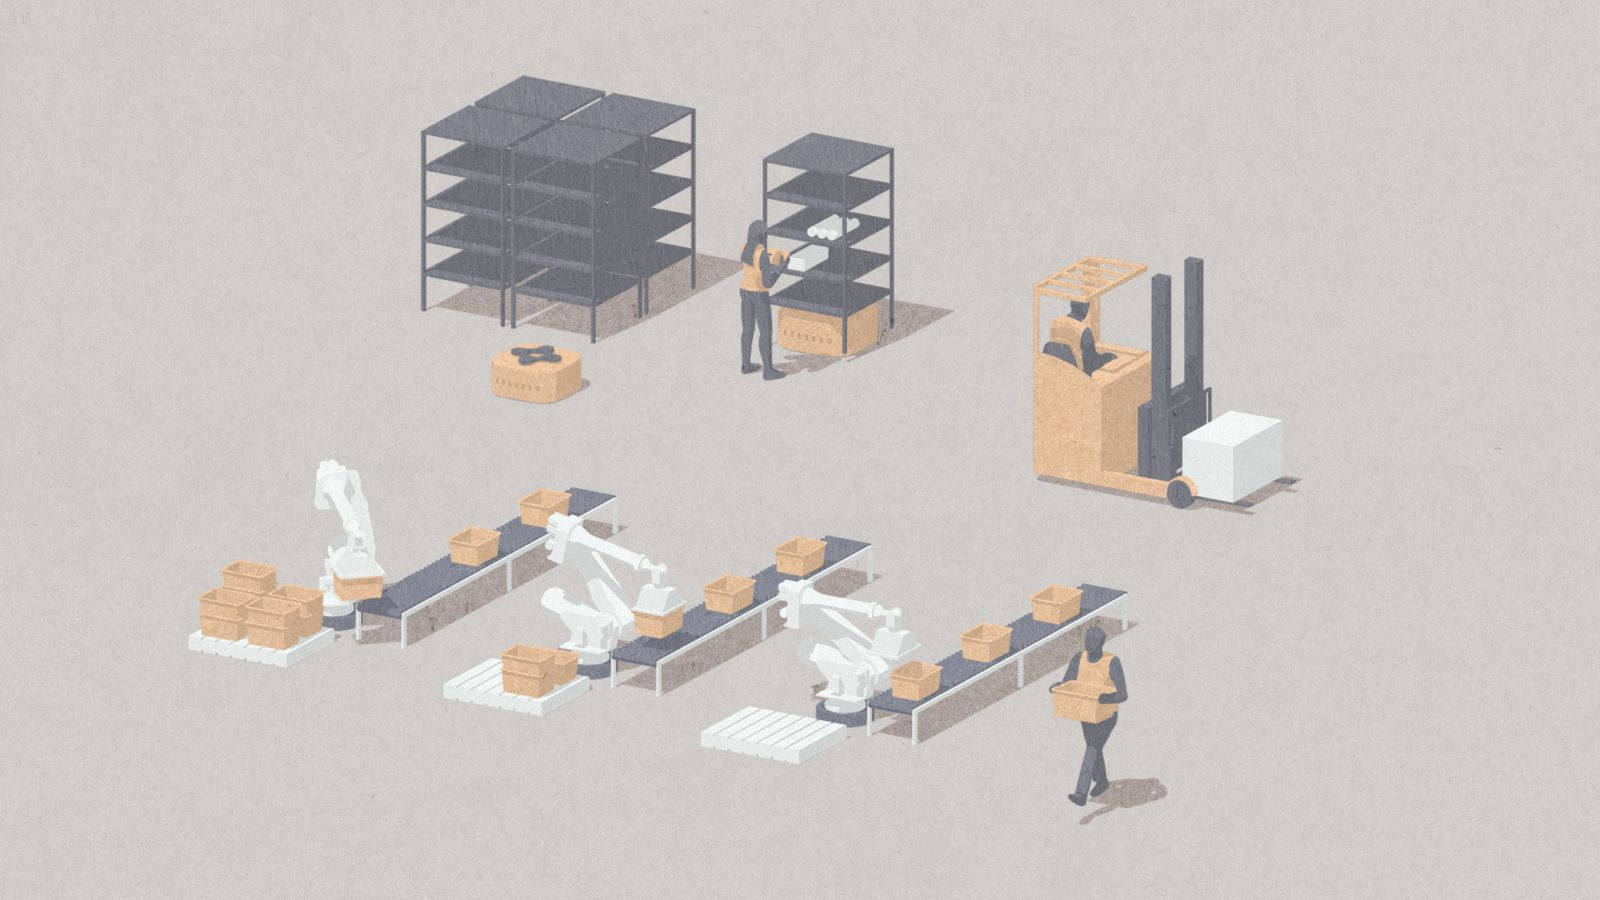 Amazon built one of the worlds most efficient warehouses